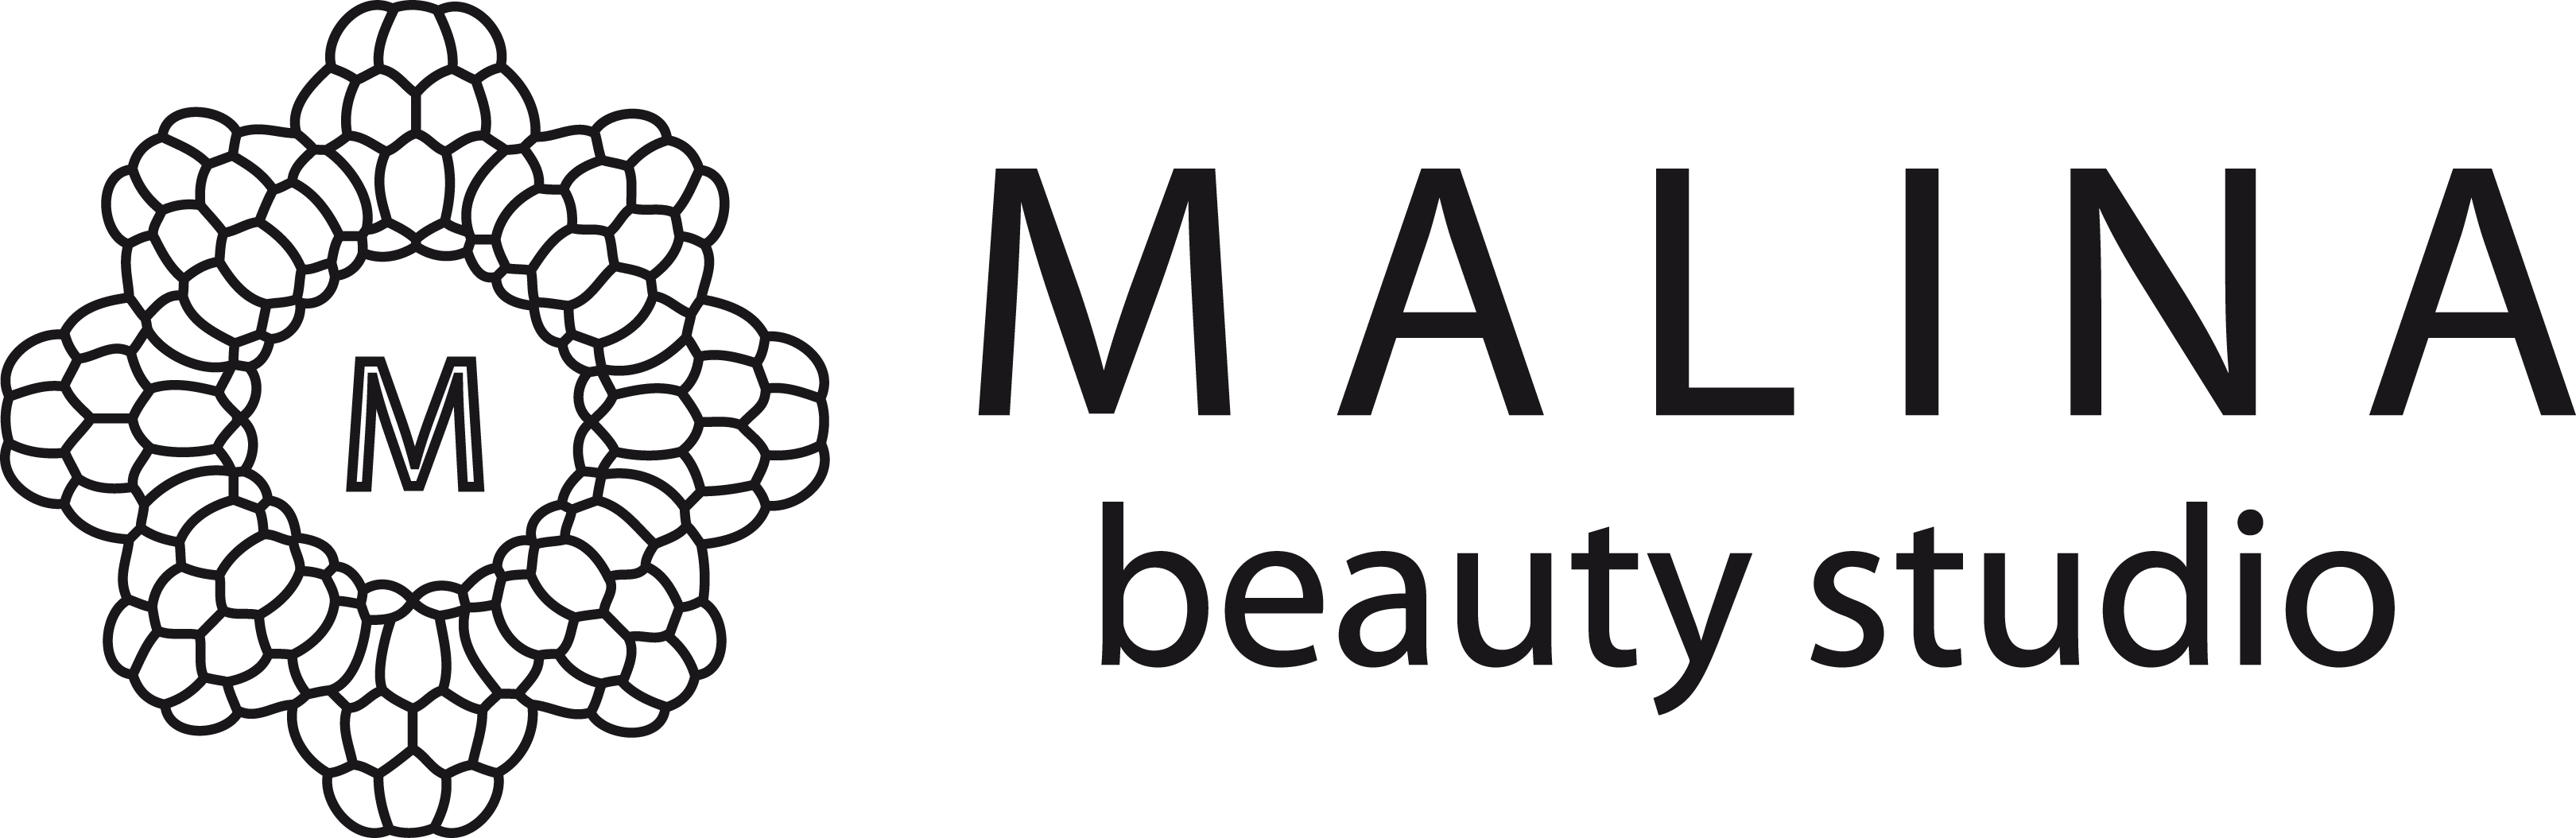 Malina Beauty Studio- logo